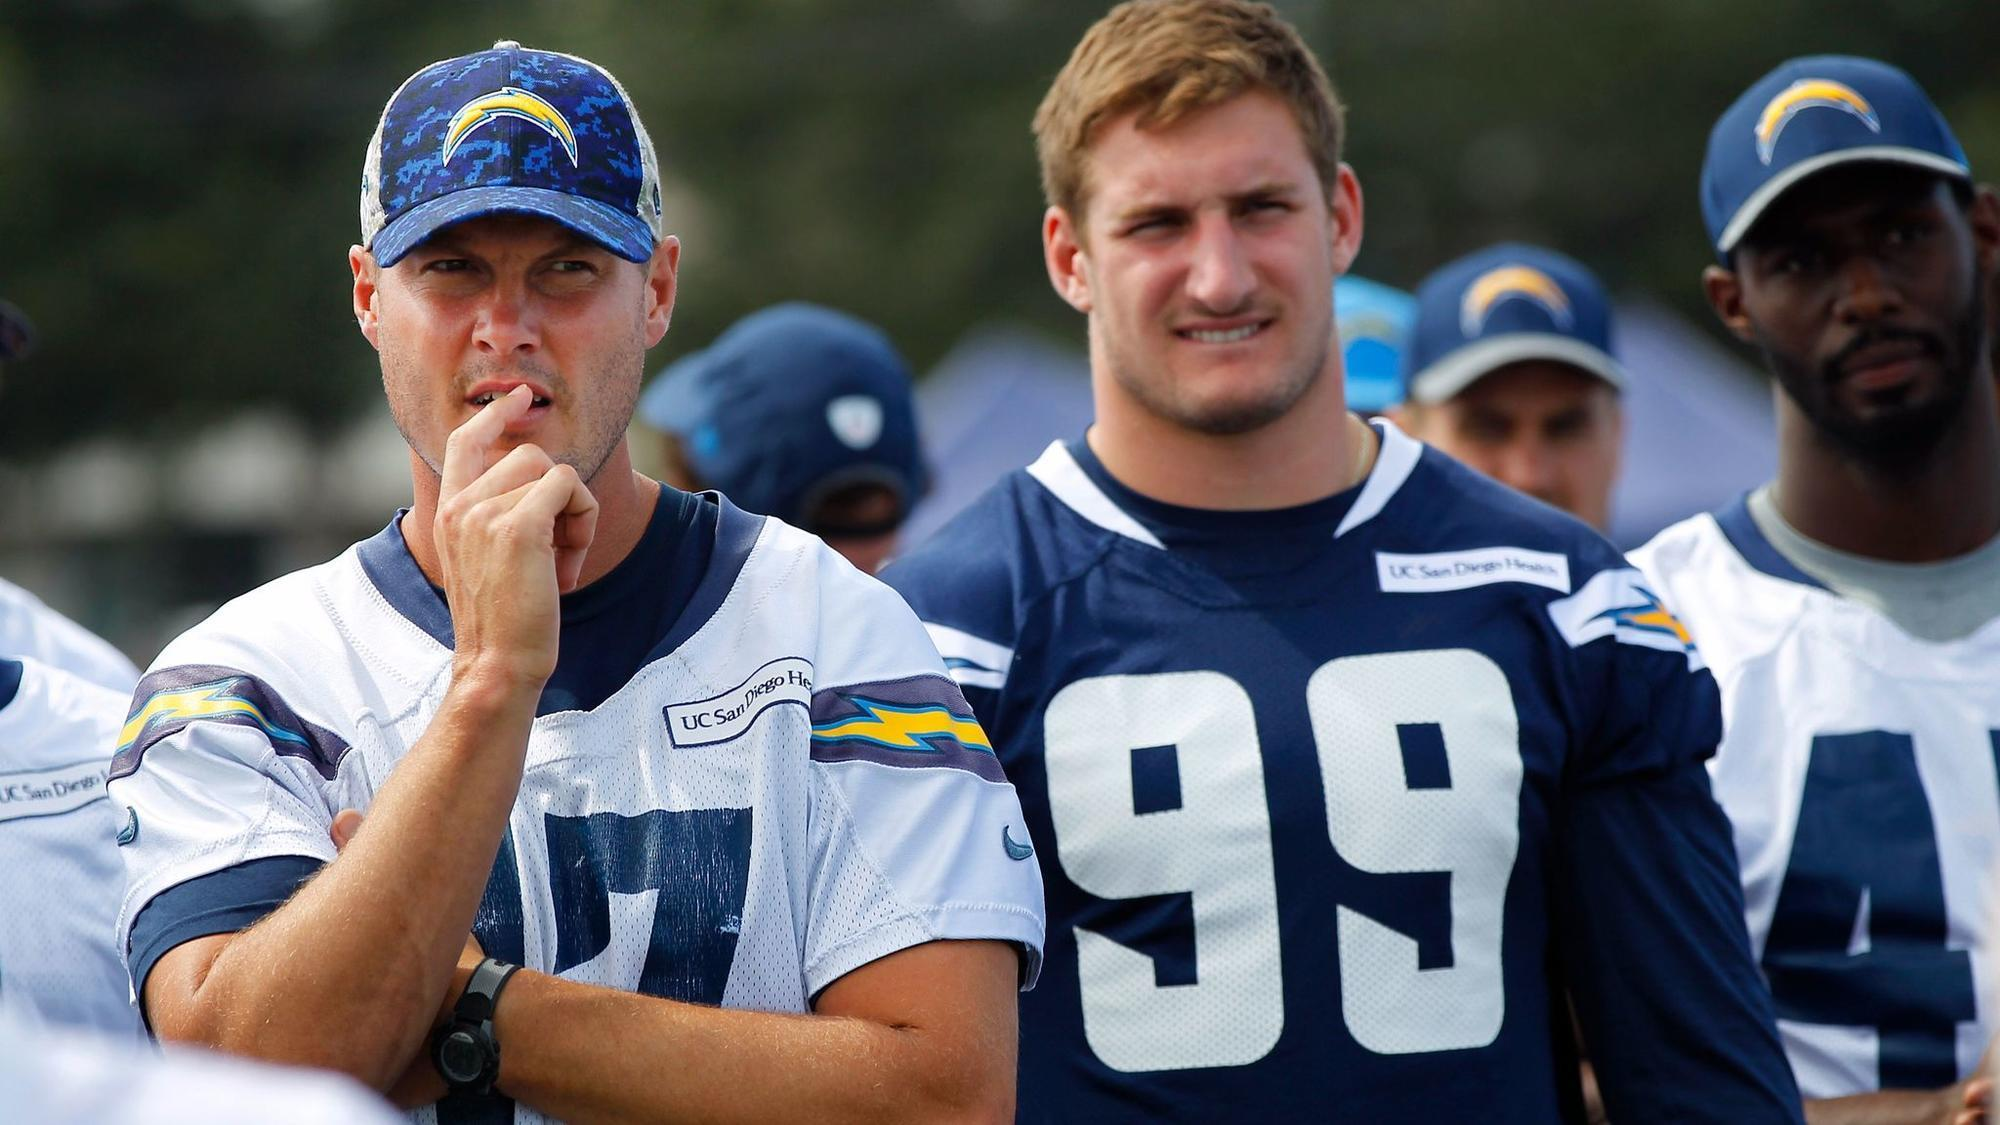 Like Tony Gwynn late in his career Philip Rivers is ting